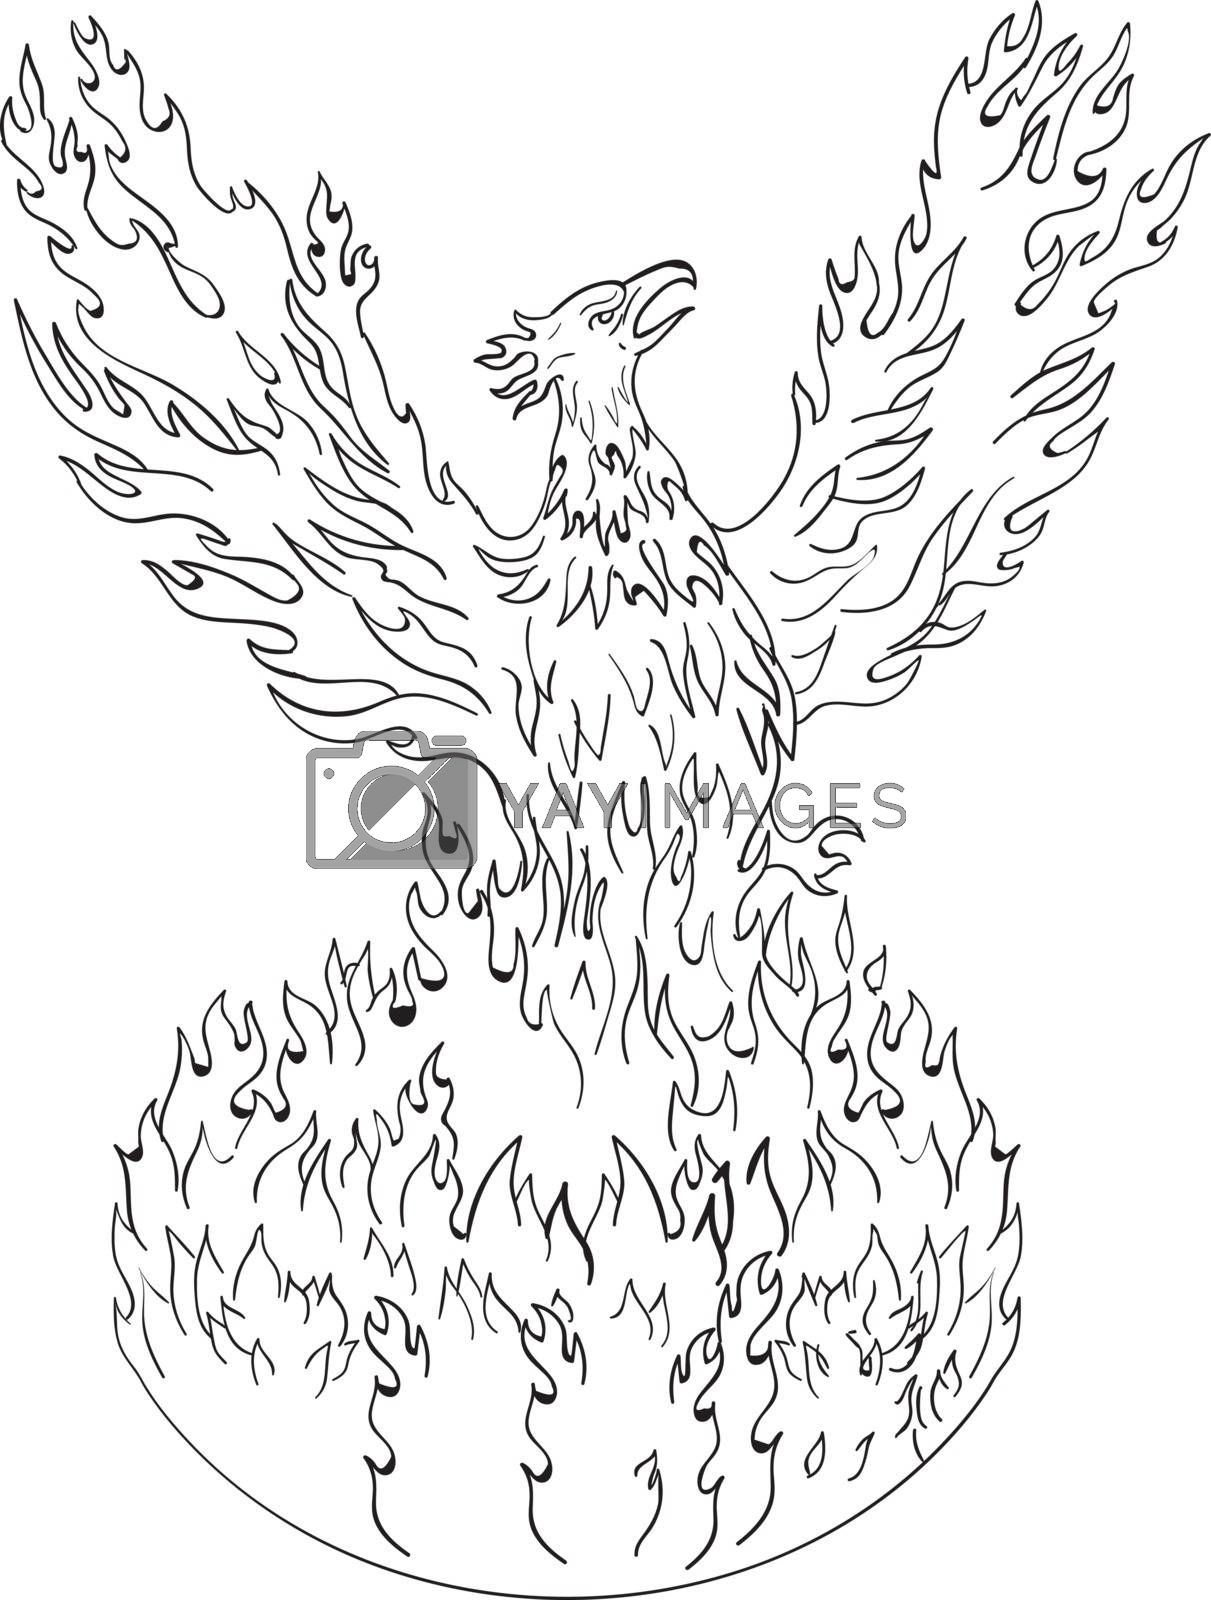 Drawing sketch style illustration of a phoenix rising up from fiery flames, wings raised for flight done in black and white set on isolated white background.